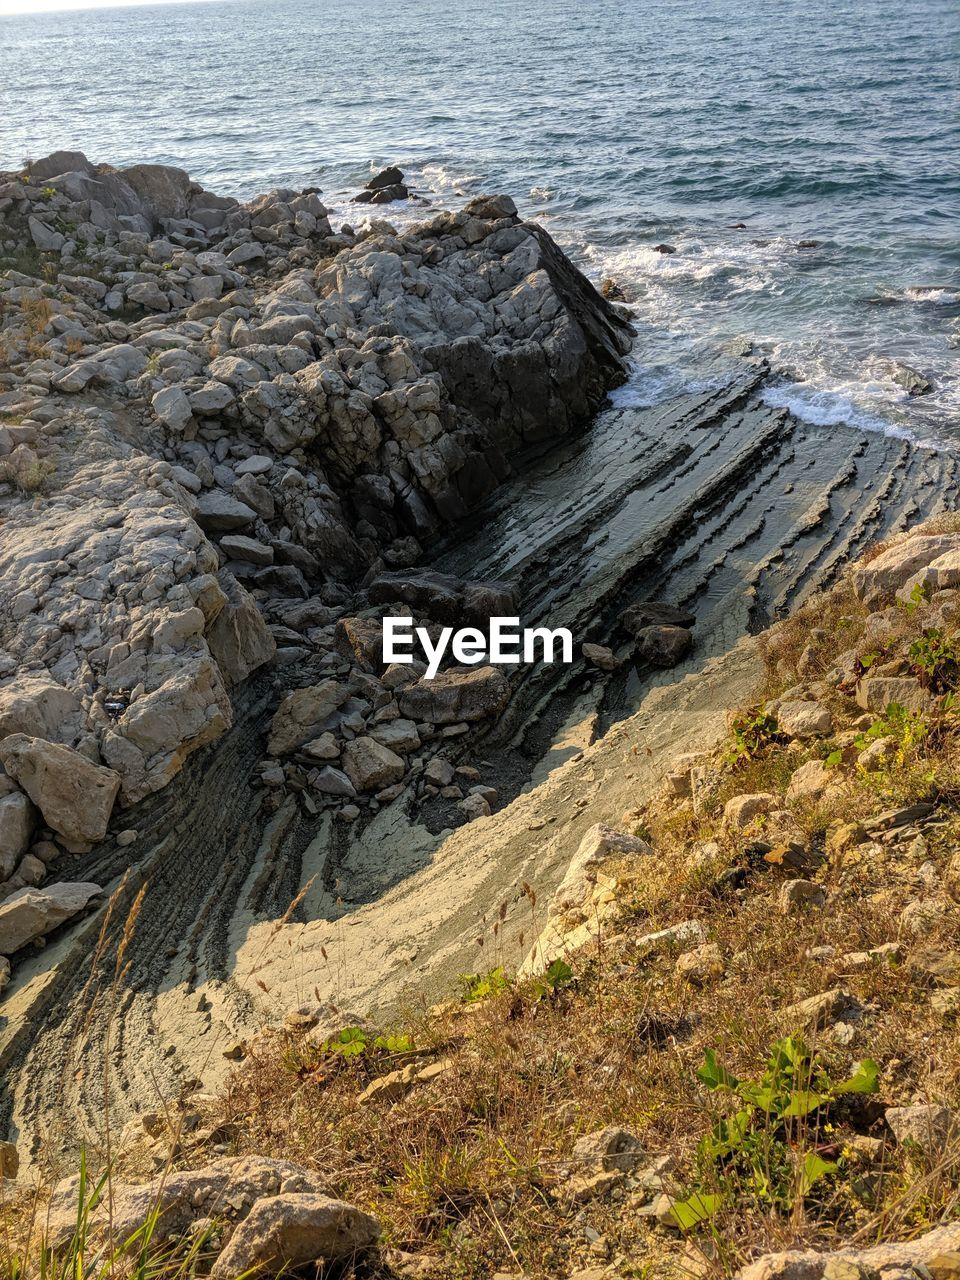 rock, sea, water, rock - object, solid, land, beach, no people, beauty in nature, nature, scenics - nature, day, rock formation, tranquility, tranquil scene, high angle view, non-urban scene, geology, outdoors, rocky coastline, eroded